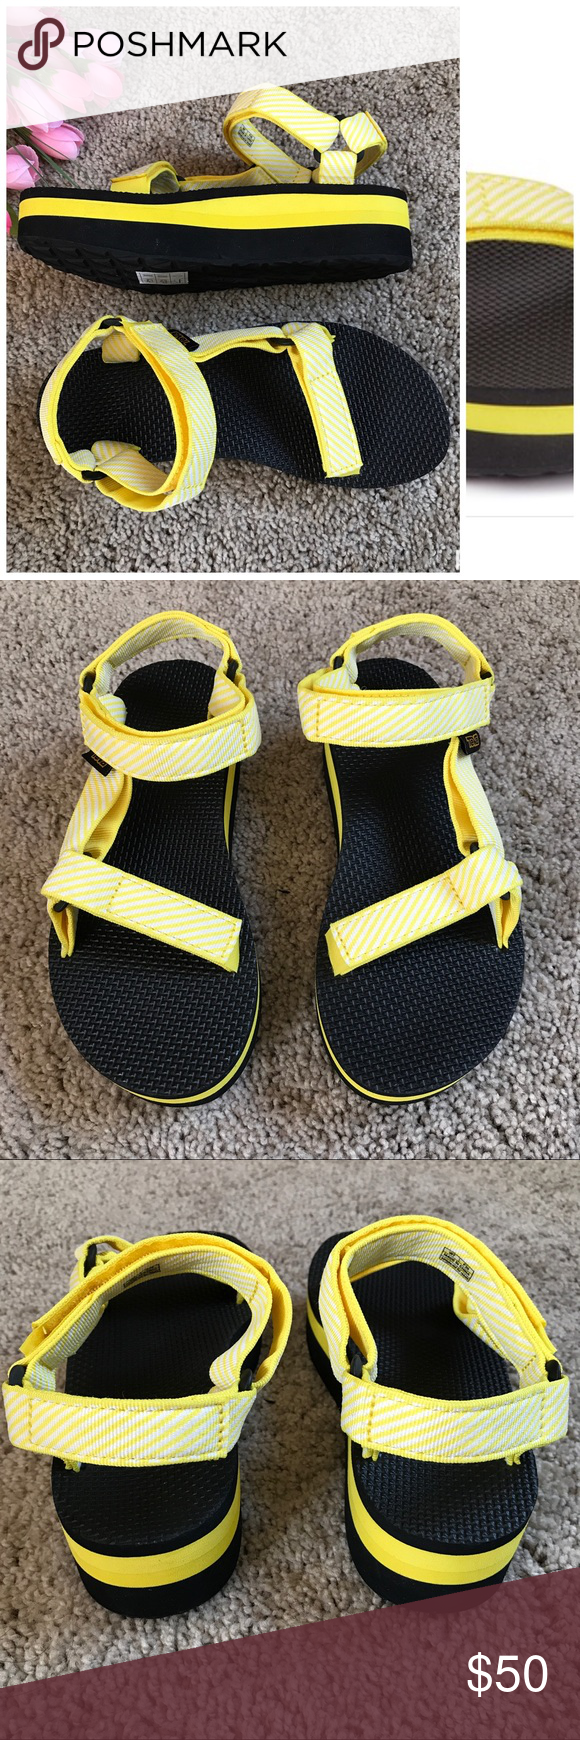 b8be3ffb202 •Teva• Candy Stripe Yellow